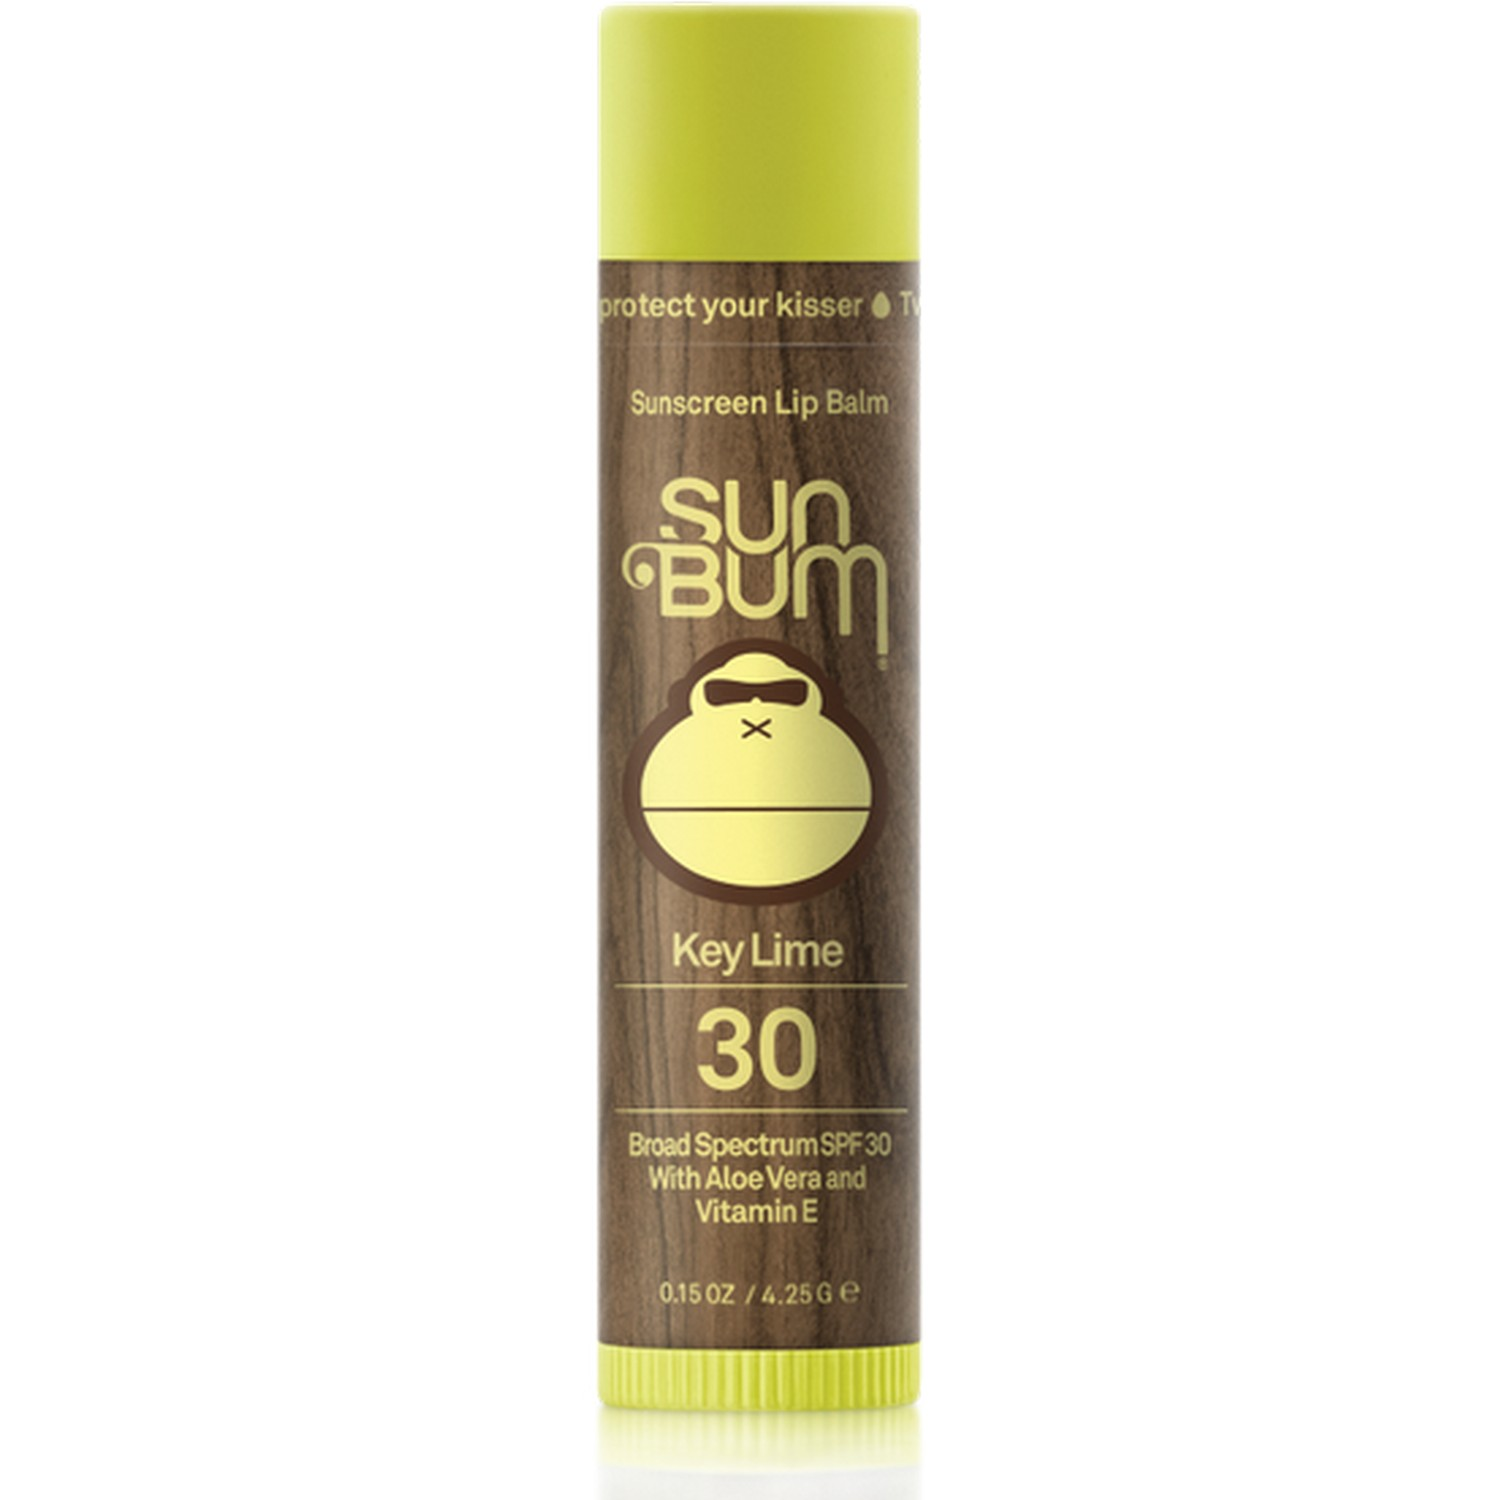 Sun Bum Sunscreen Lip Balm Key Lime 30 Broad Spectrum SPF 30 (0.15 oz / 4.25 g)